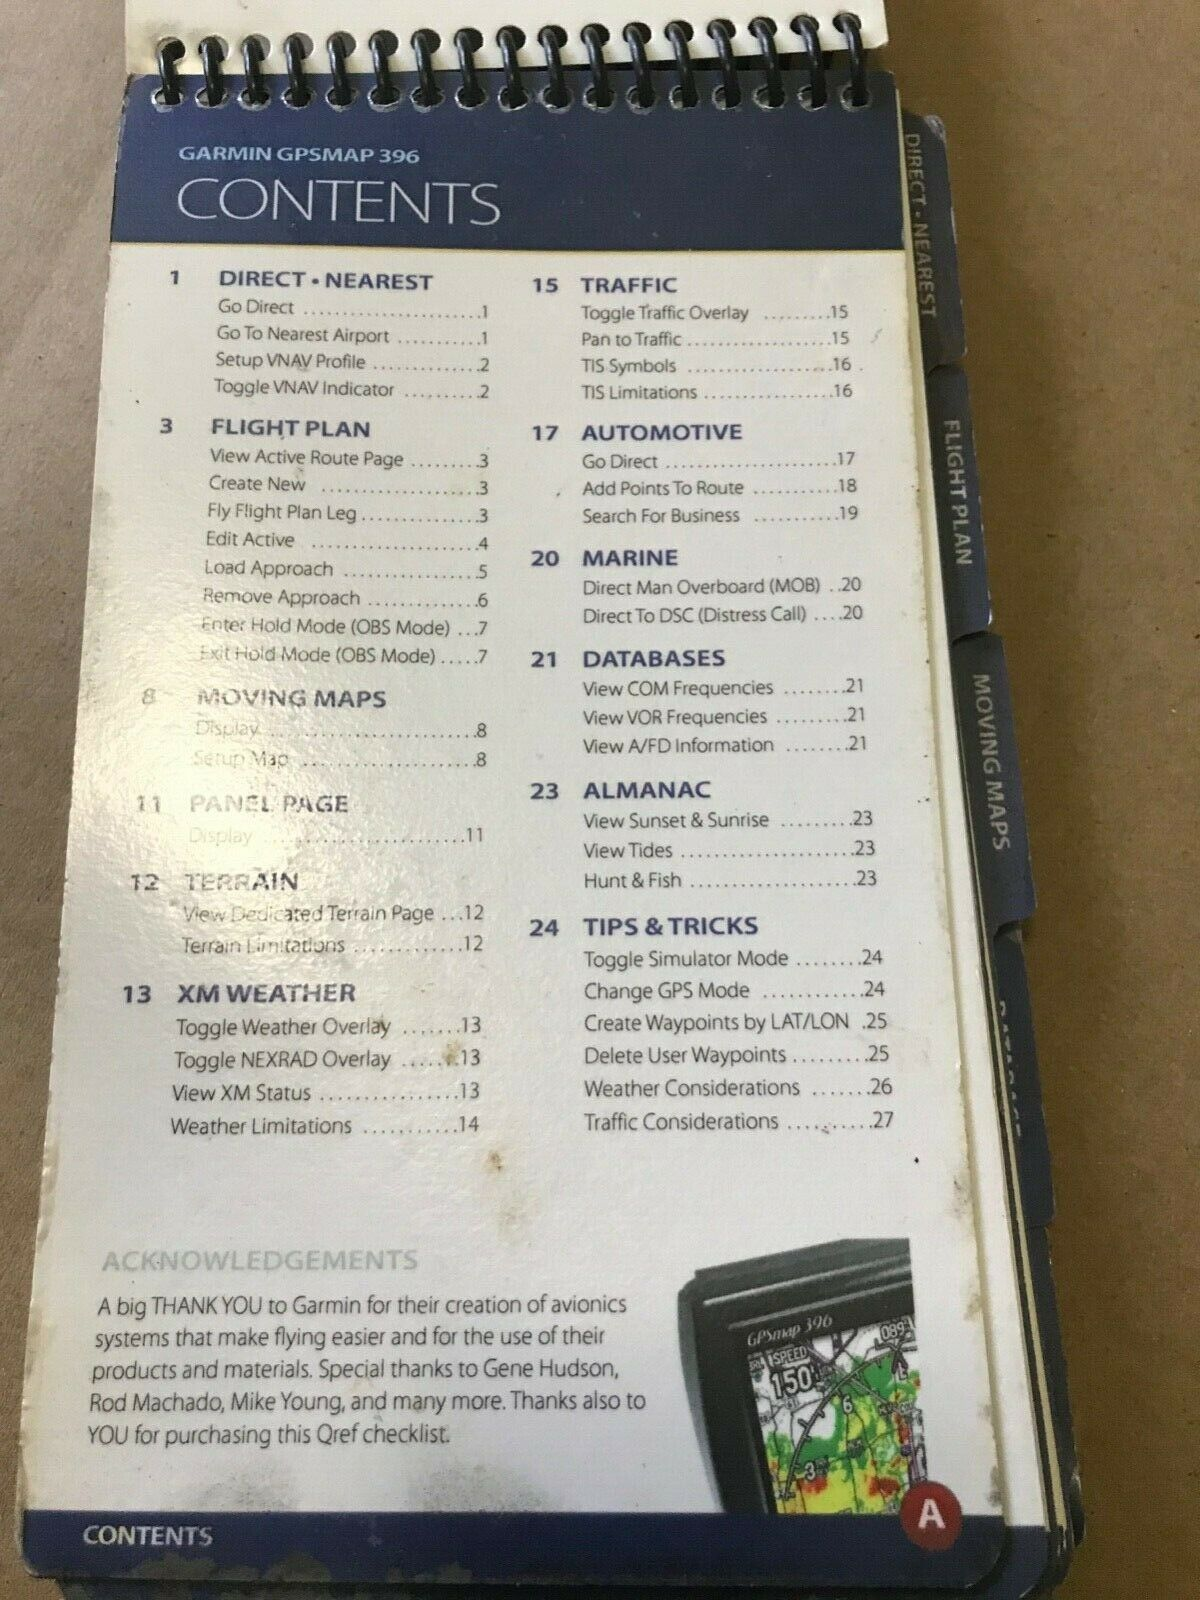 Garmin GPSMAP 396 Quick Reference Guide